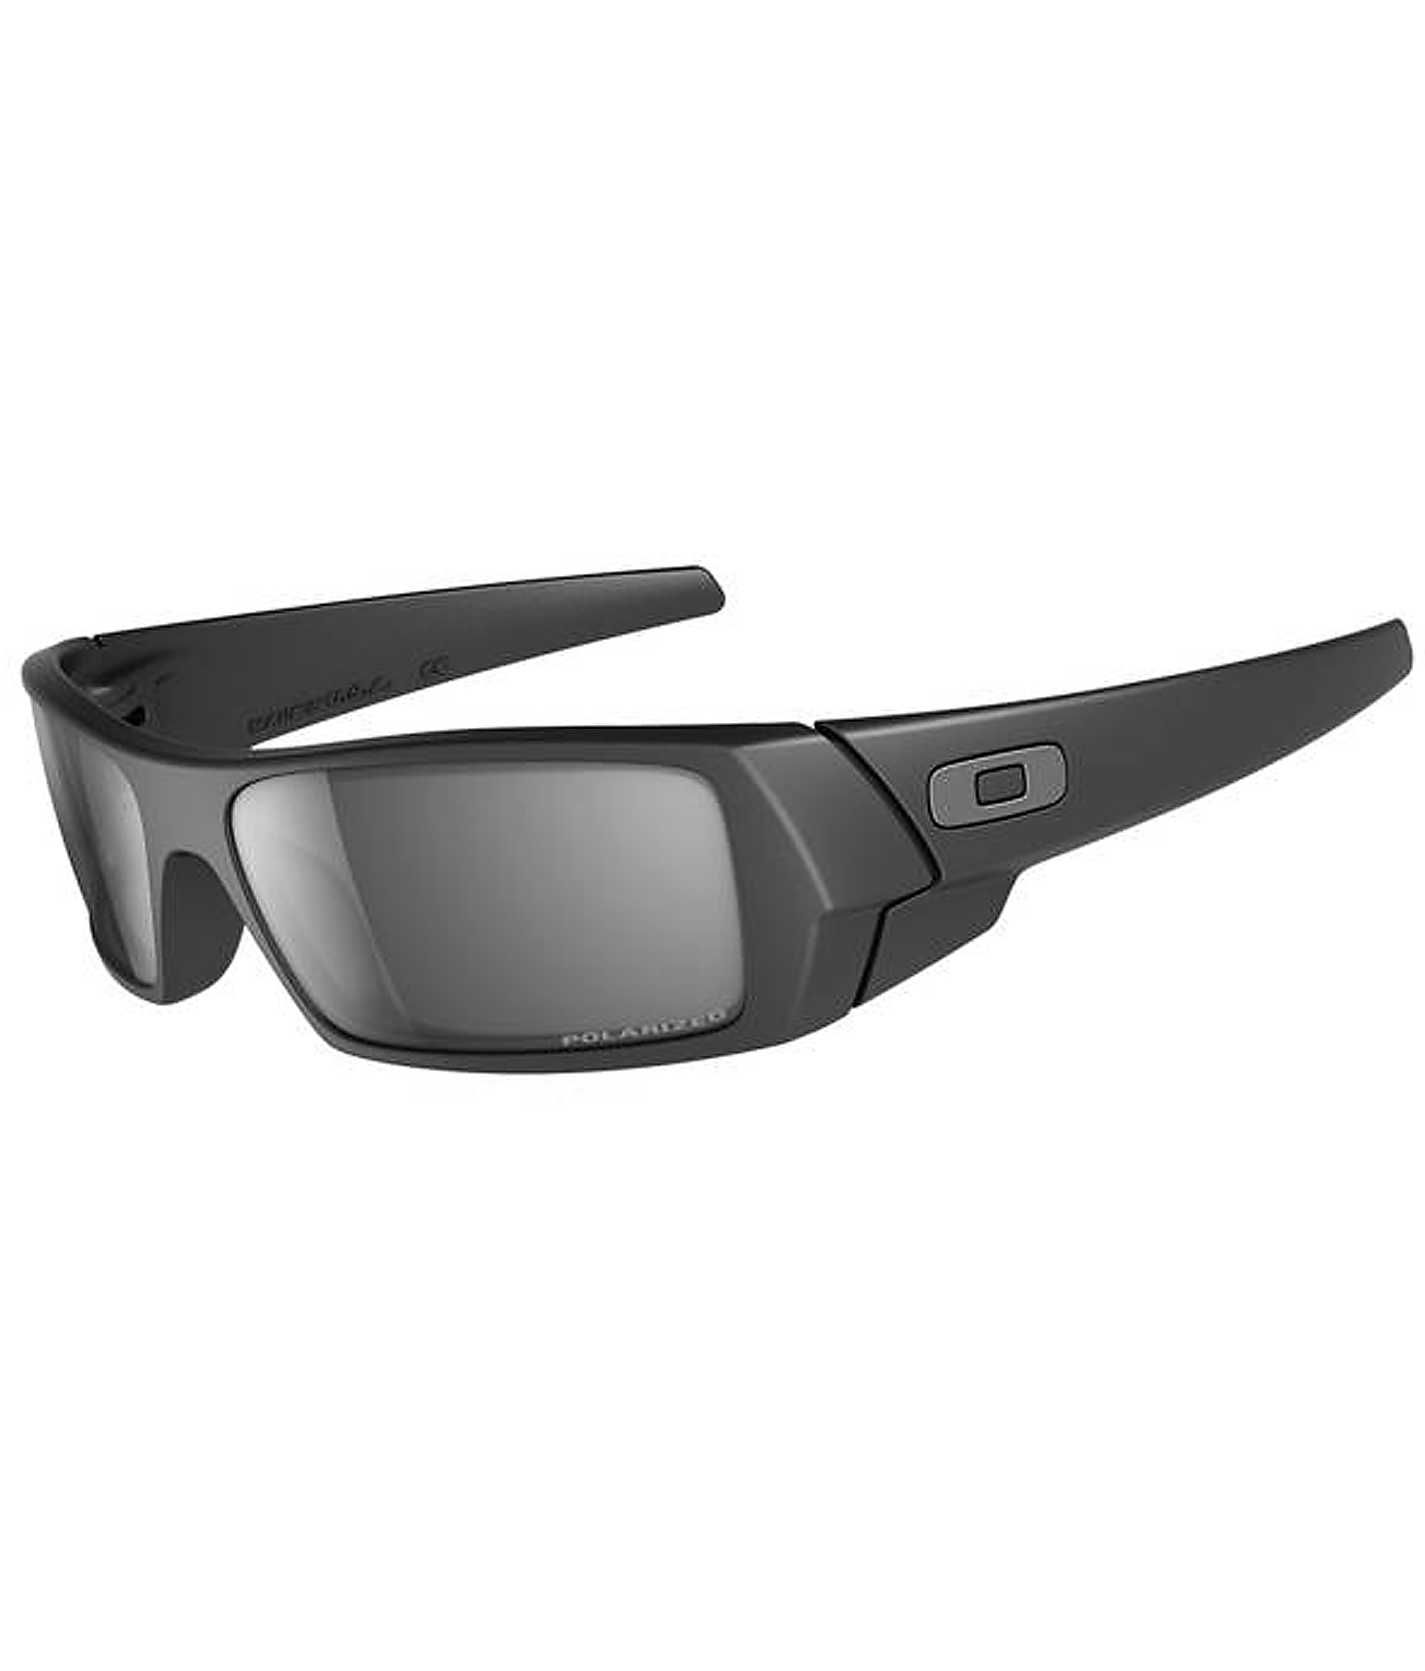 fd45ded95bd7e Oakley Gascan Sunglasses - Men s Accessories